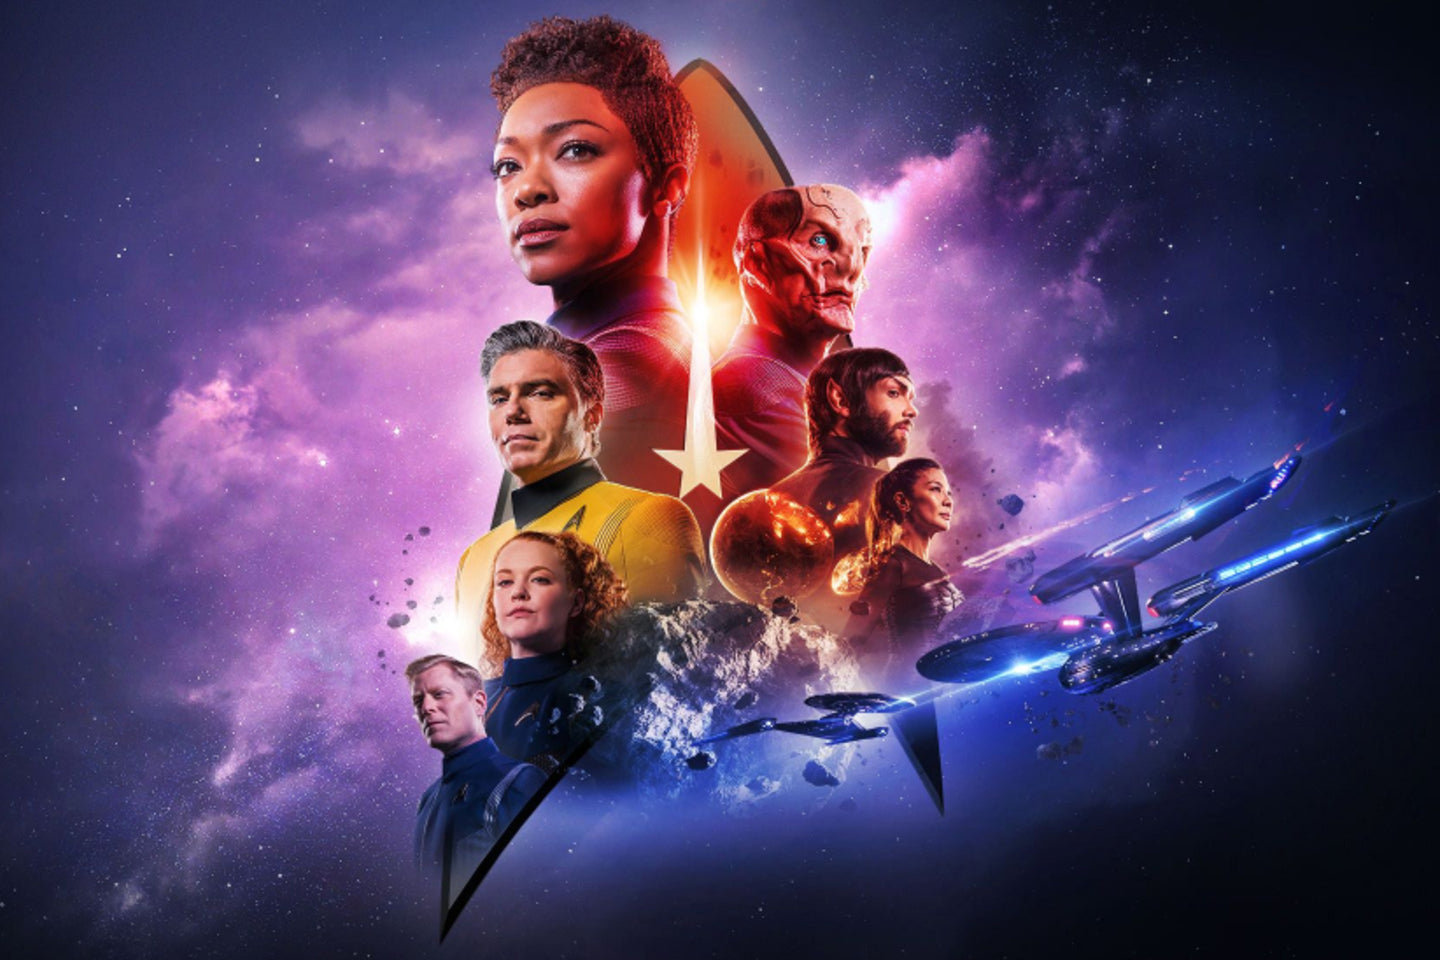 About Star Trek: Discovery